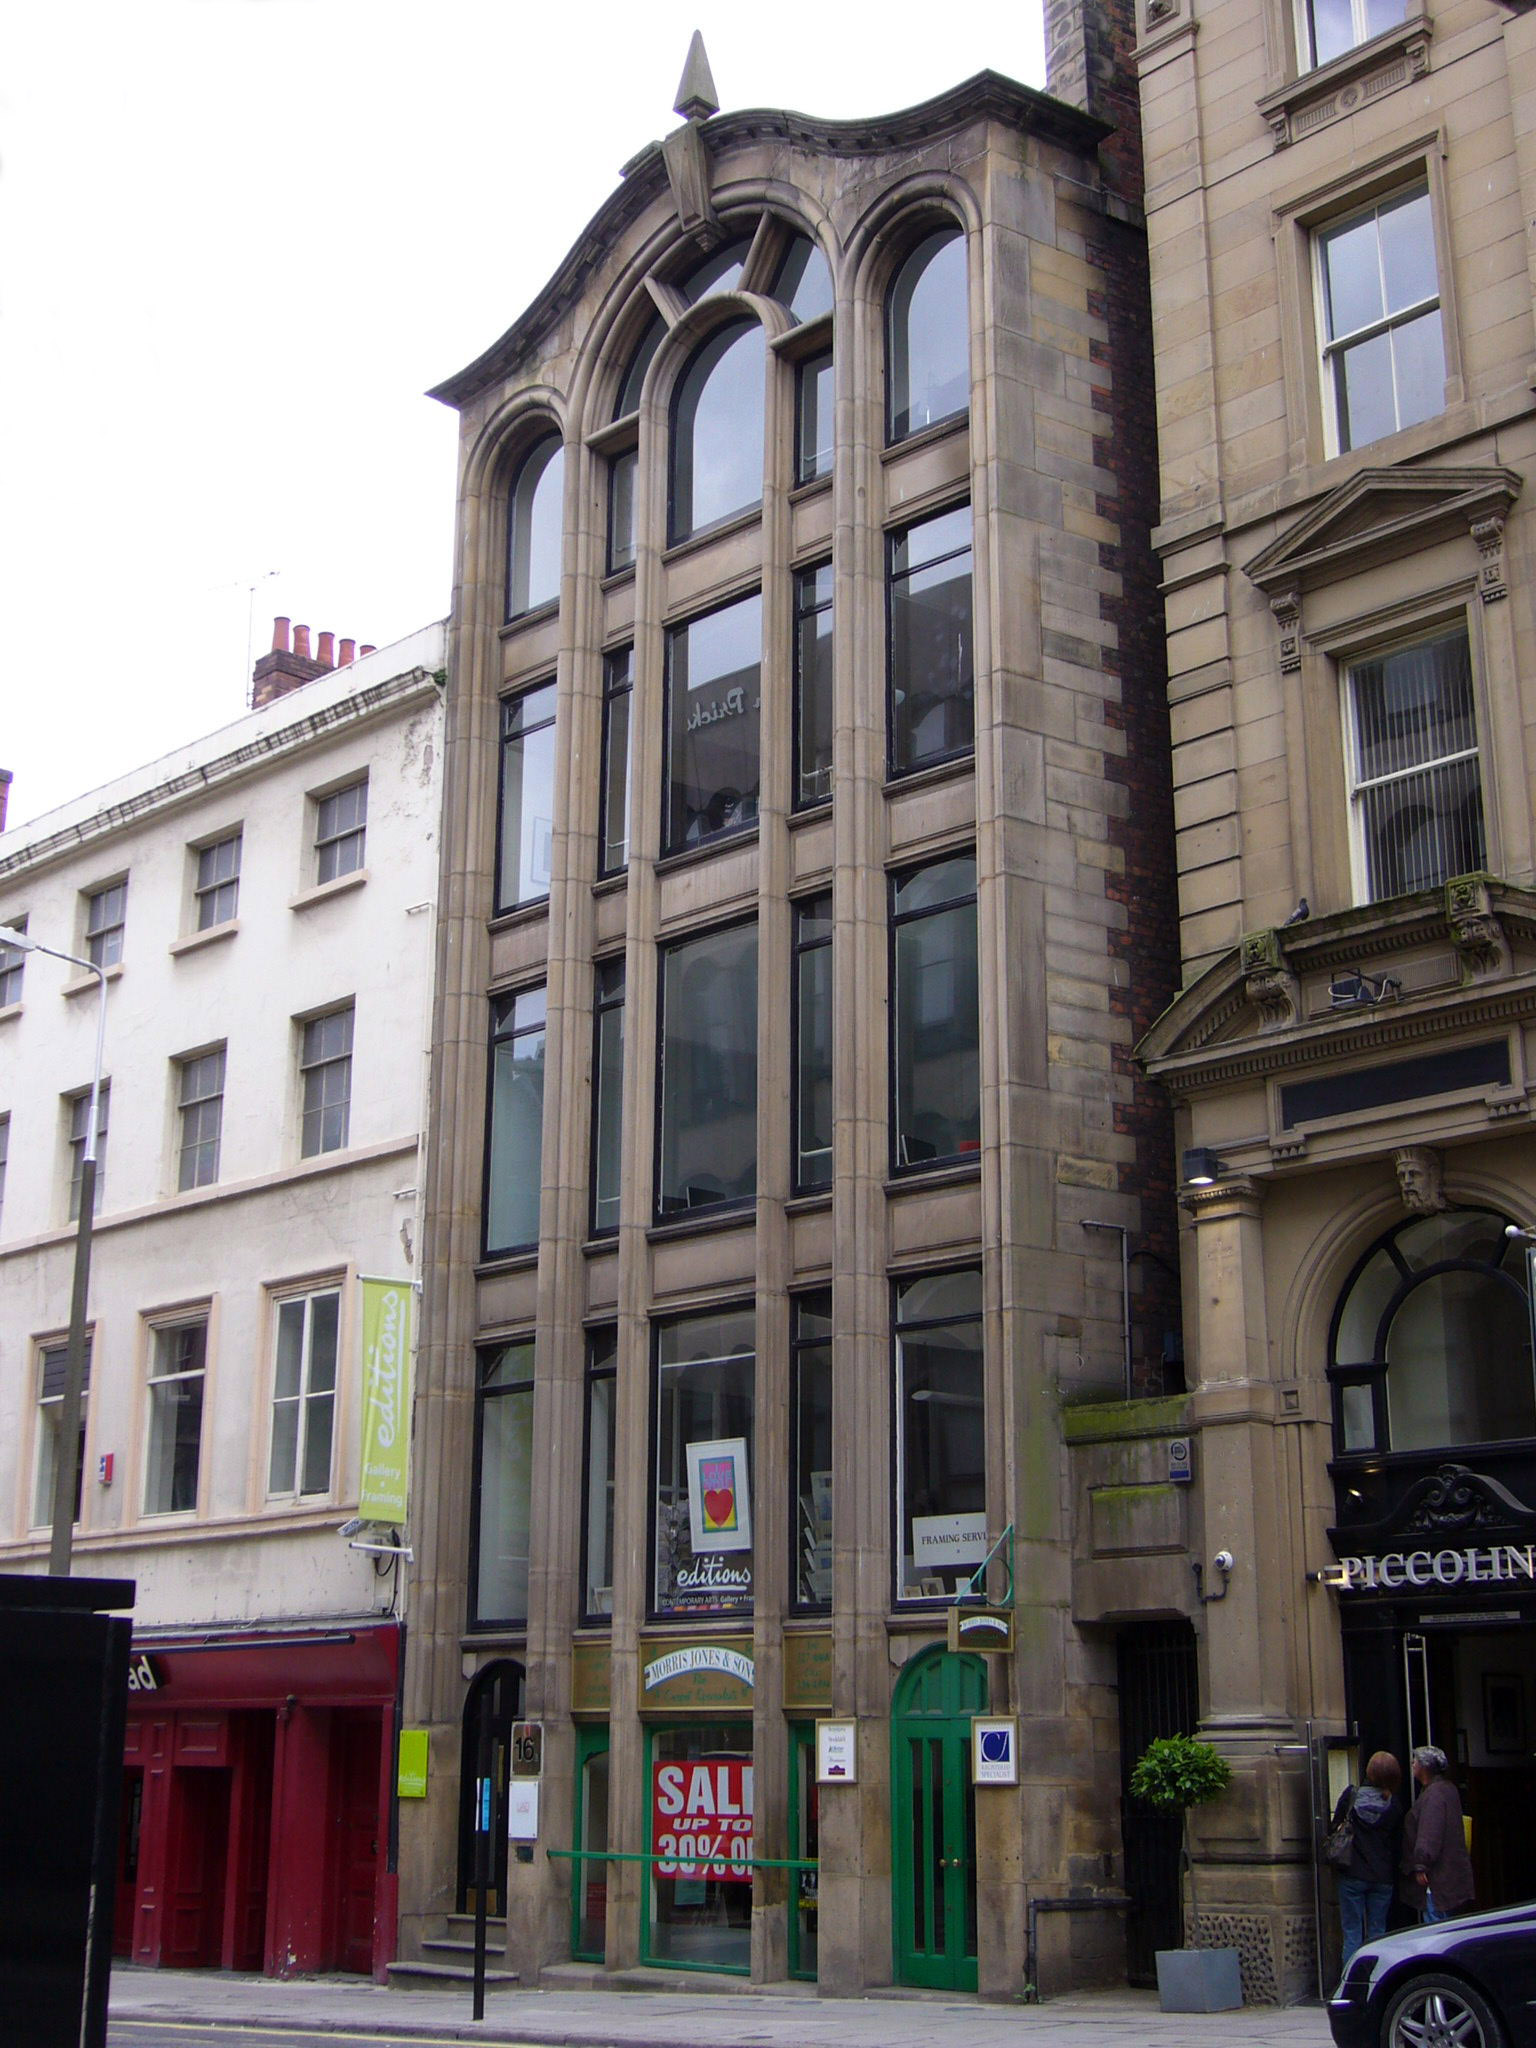 16 Cook Street, Liverpool, England,1866. Extensive use of floor to ceiling glass is used, enabling light penetration deeper into the building maximizing floor space.